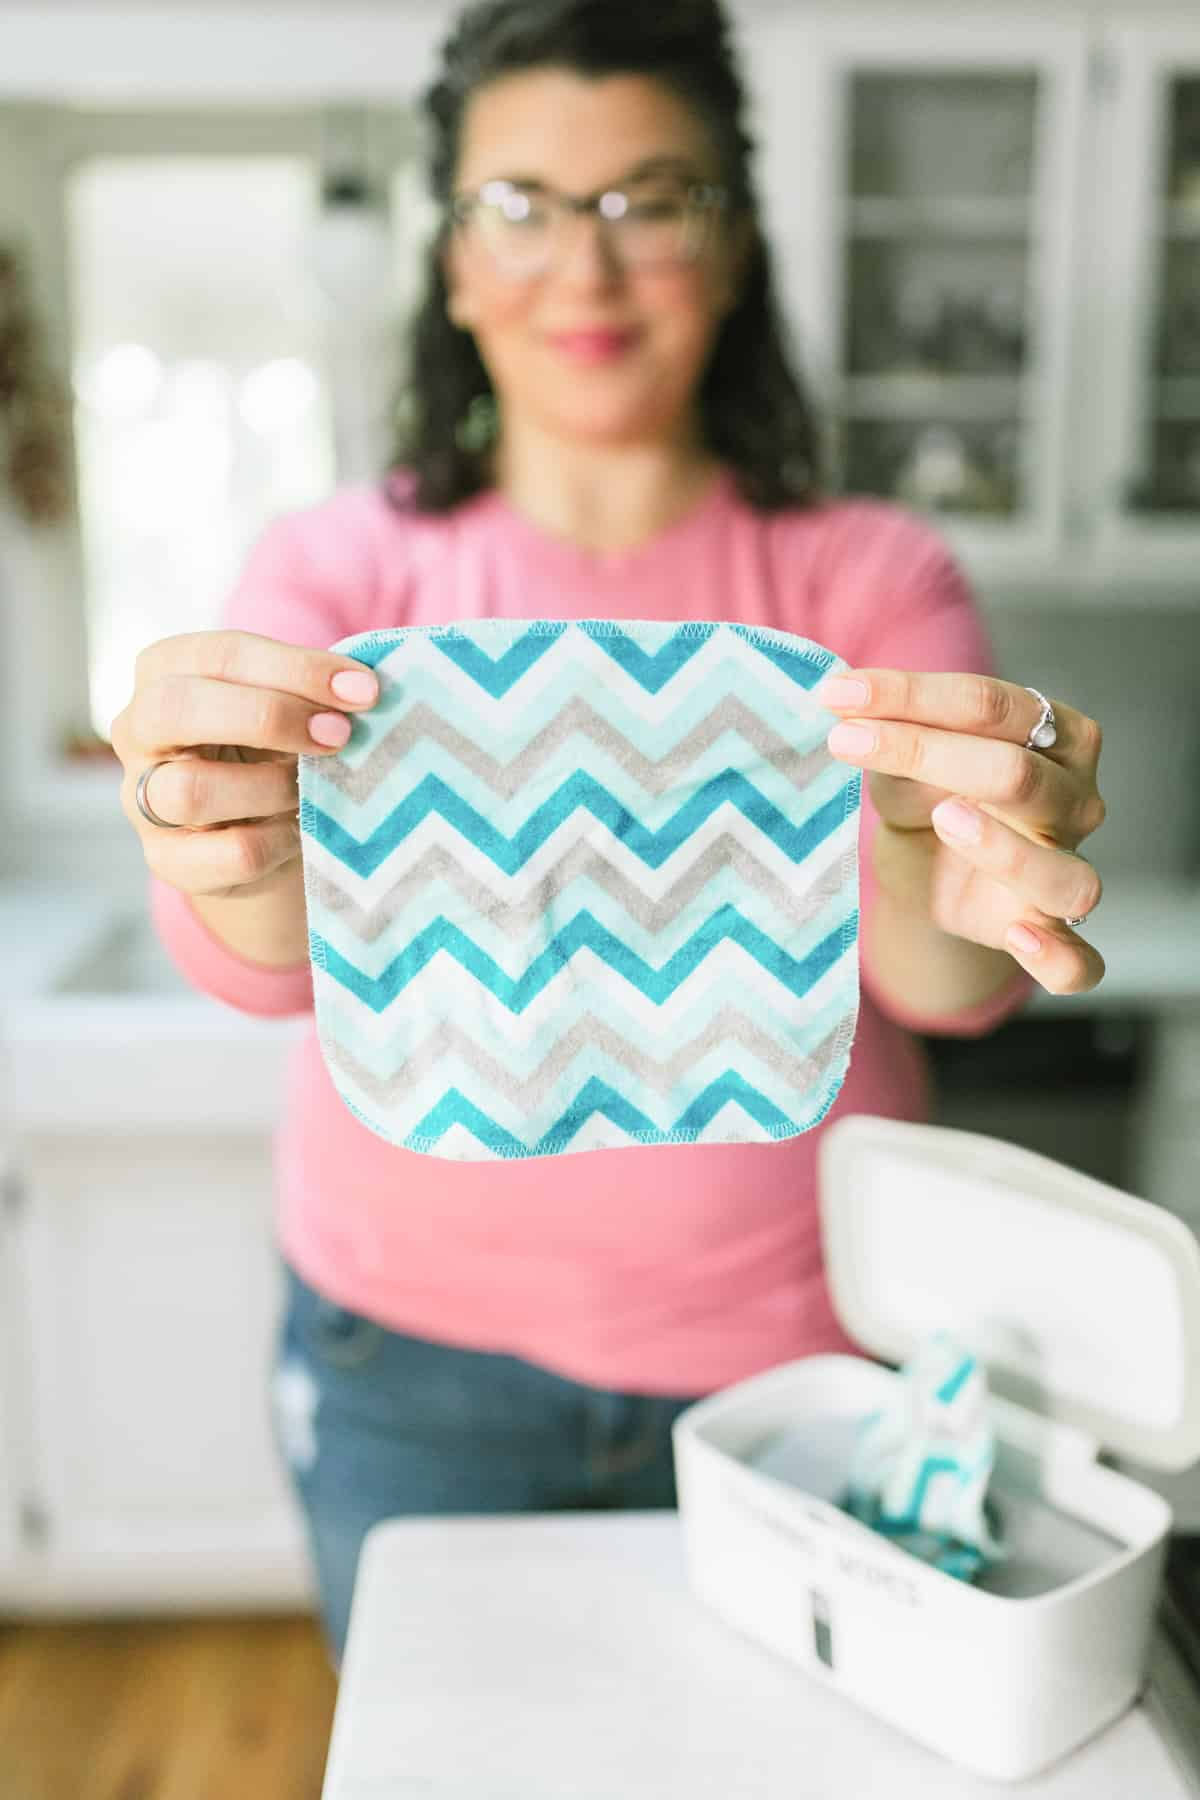 Woman in a pink shirt holding out a square flannel wipe to use as a cleaning wipe